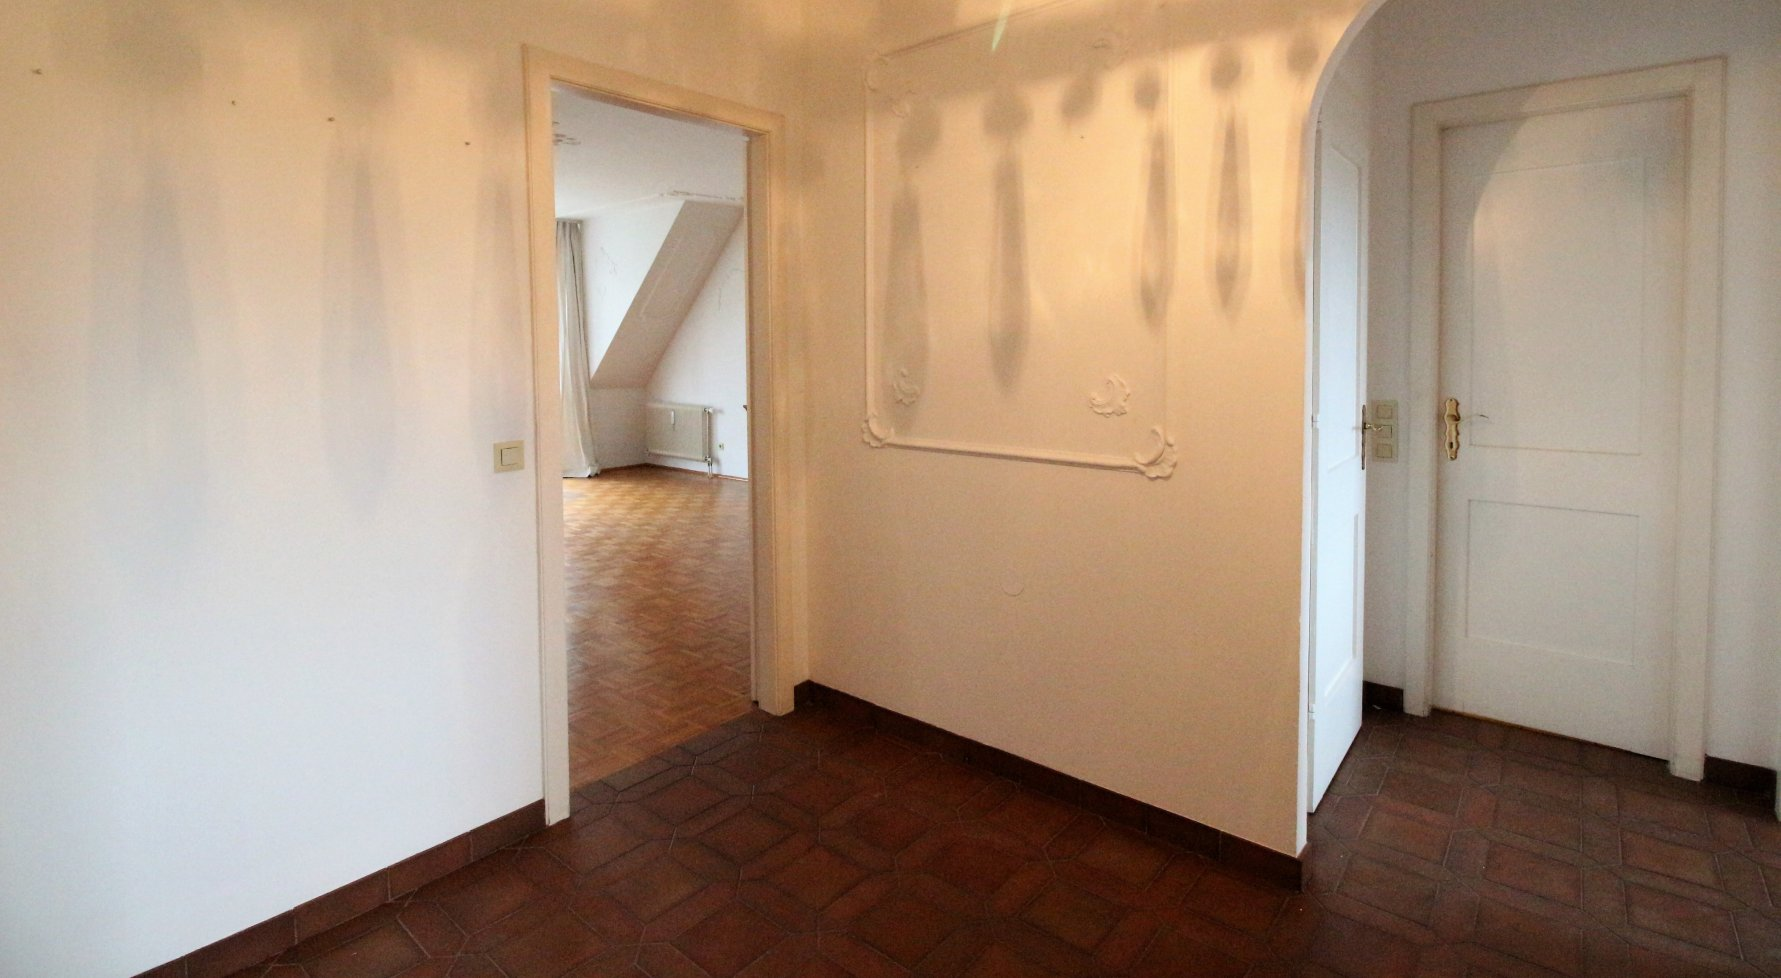 Property in 1190 Wien: AT THE HEART OF GRINZING, IN A QUIET PARK LOCATION!  - picture 1